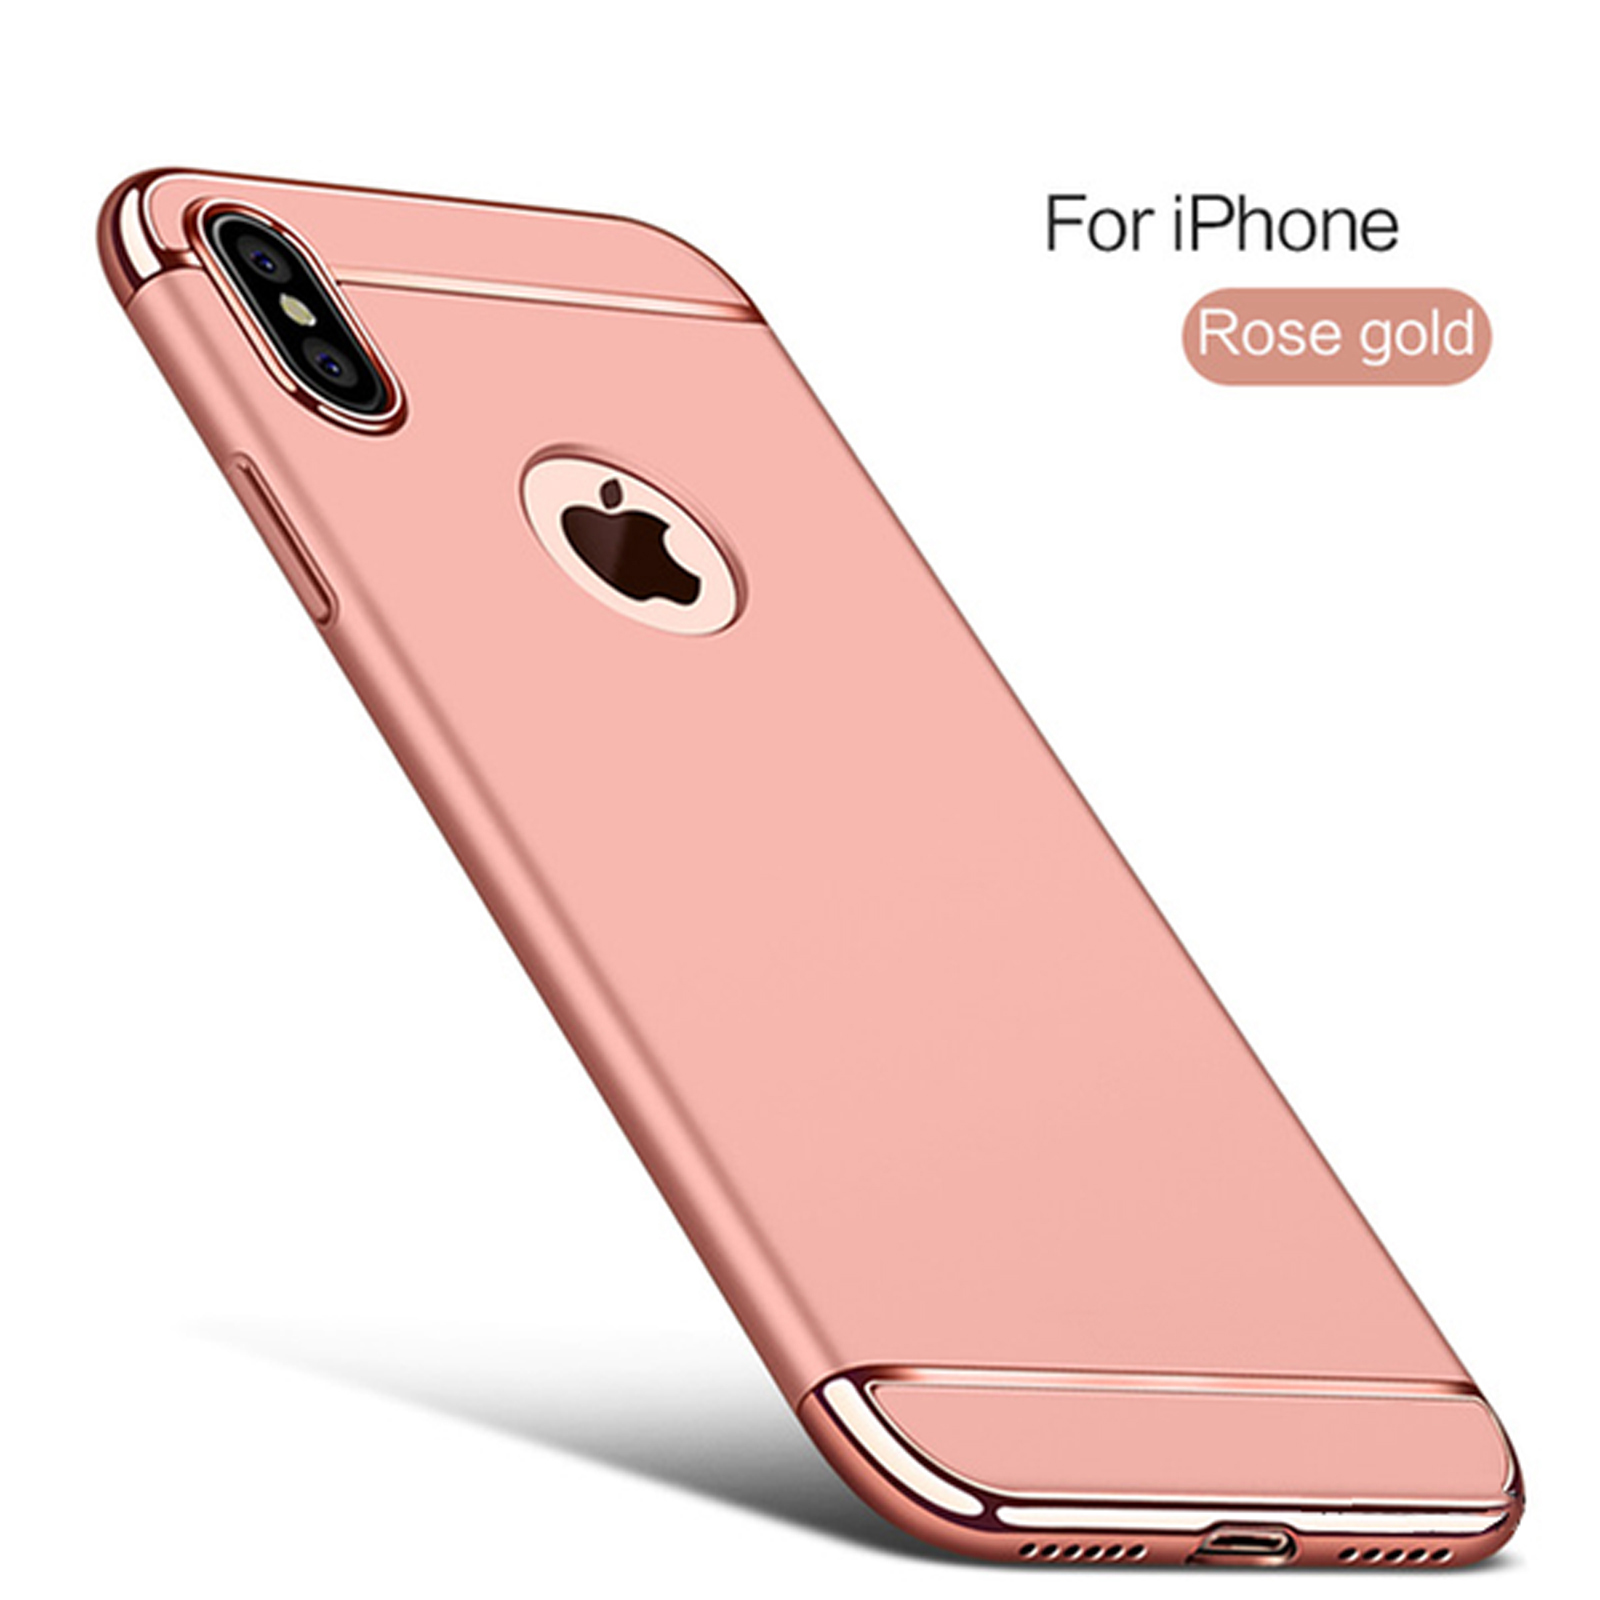 thumbnail 51 - Luxury Matte Case Tempered Glass Cover For Apple iPhone X XS XR Max 10 8 7 6s 6